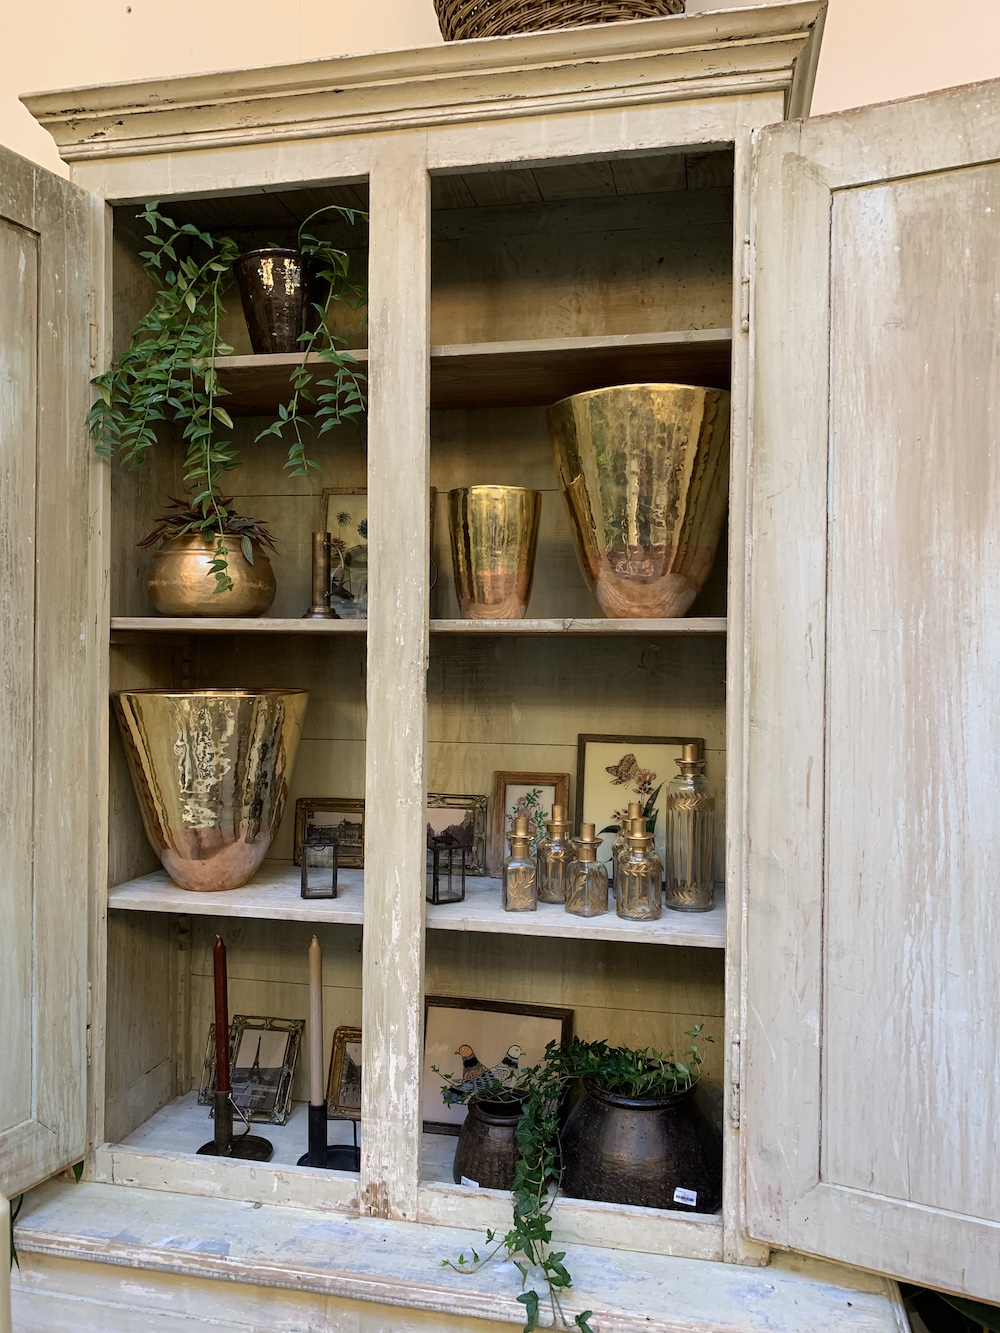 7 Things to do at Petersham Nurseries Petersham Homewares in Bookshelf #PetershamNurseries #Garden #GardenTools #GardenSupplies #Gardening #HomeDecor #GardenDecor #London #CoventGarden